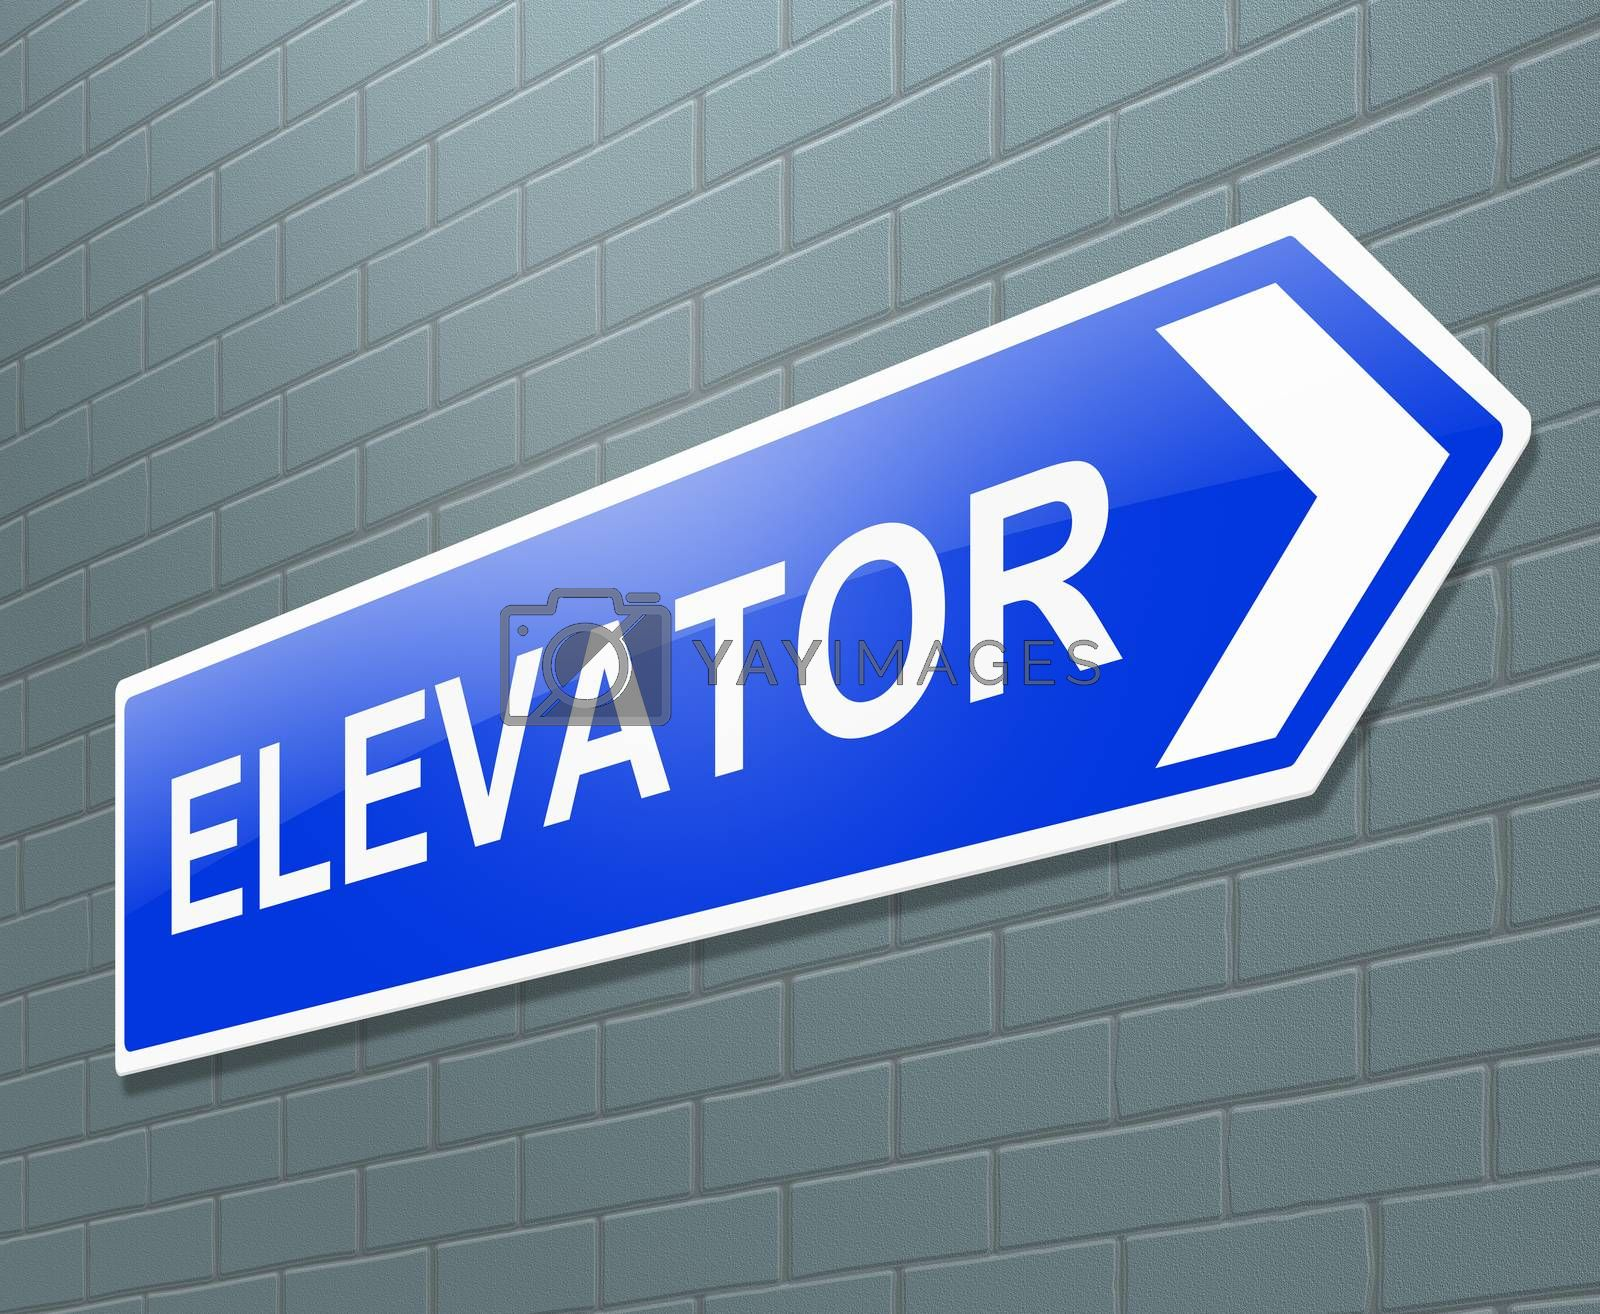 Illustration depicting a sign with an elevator concept.